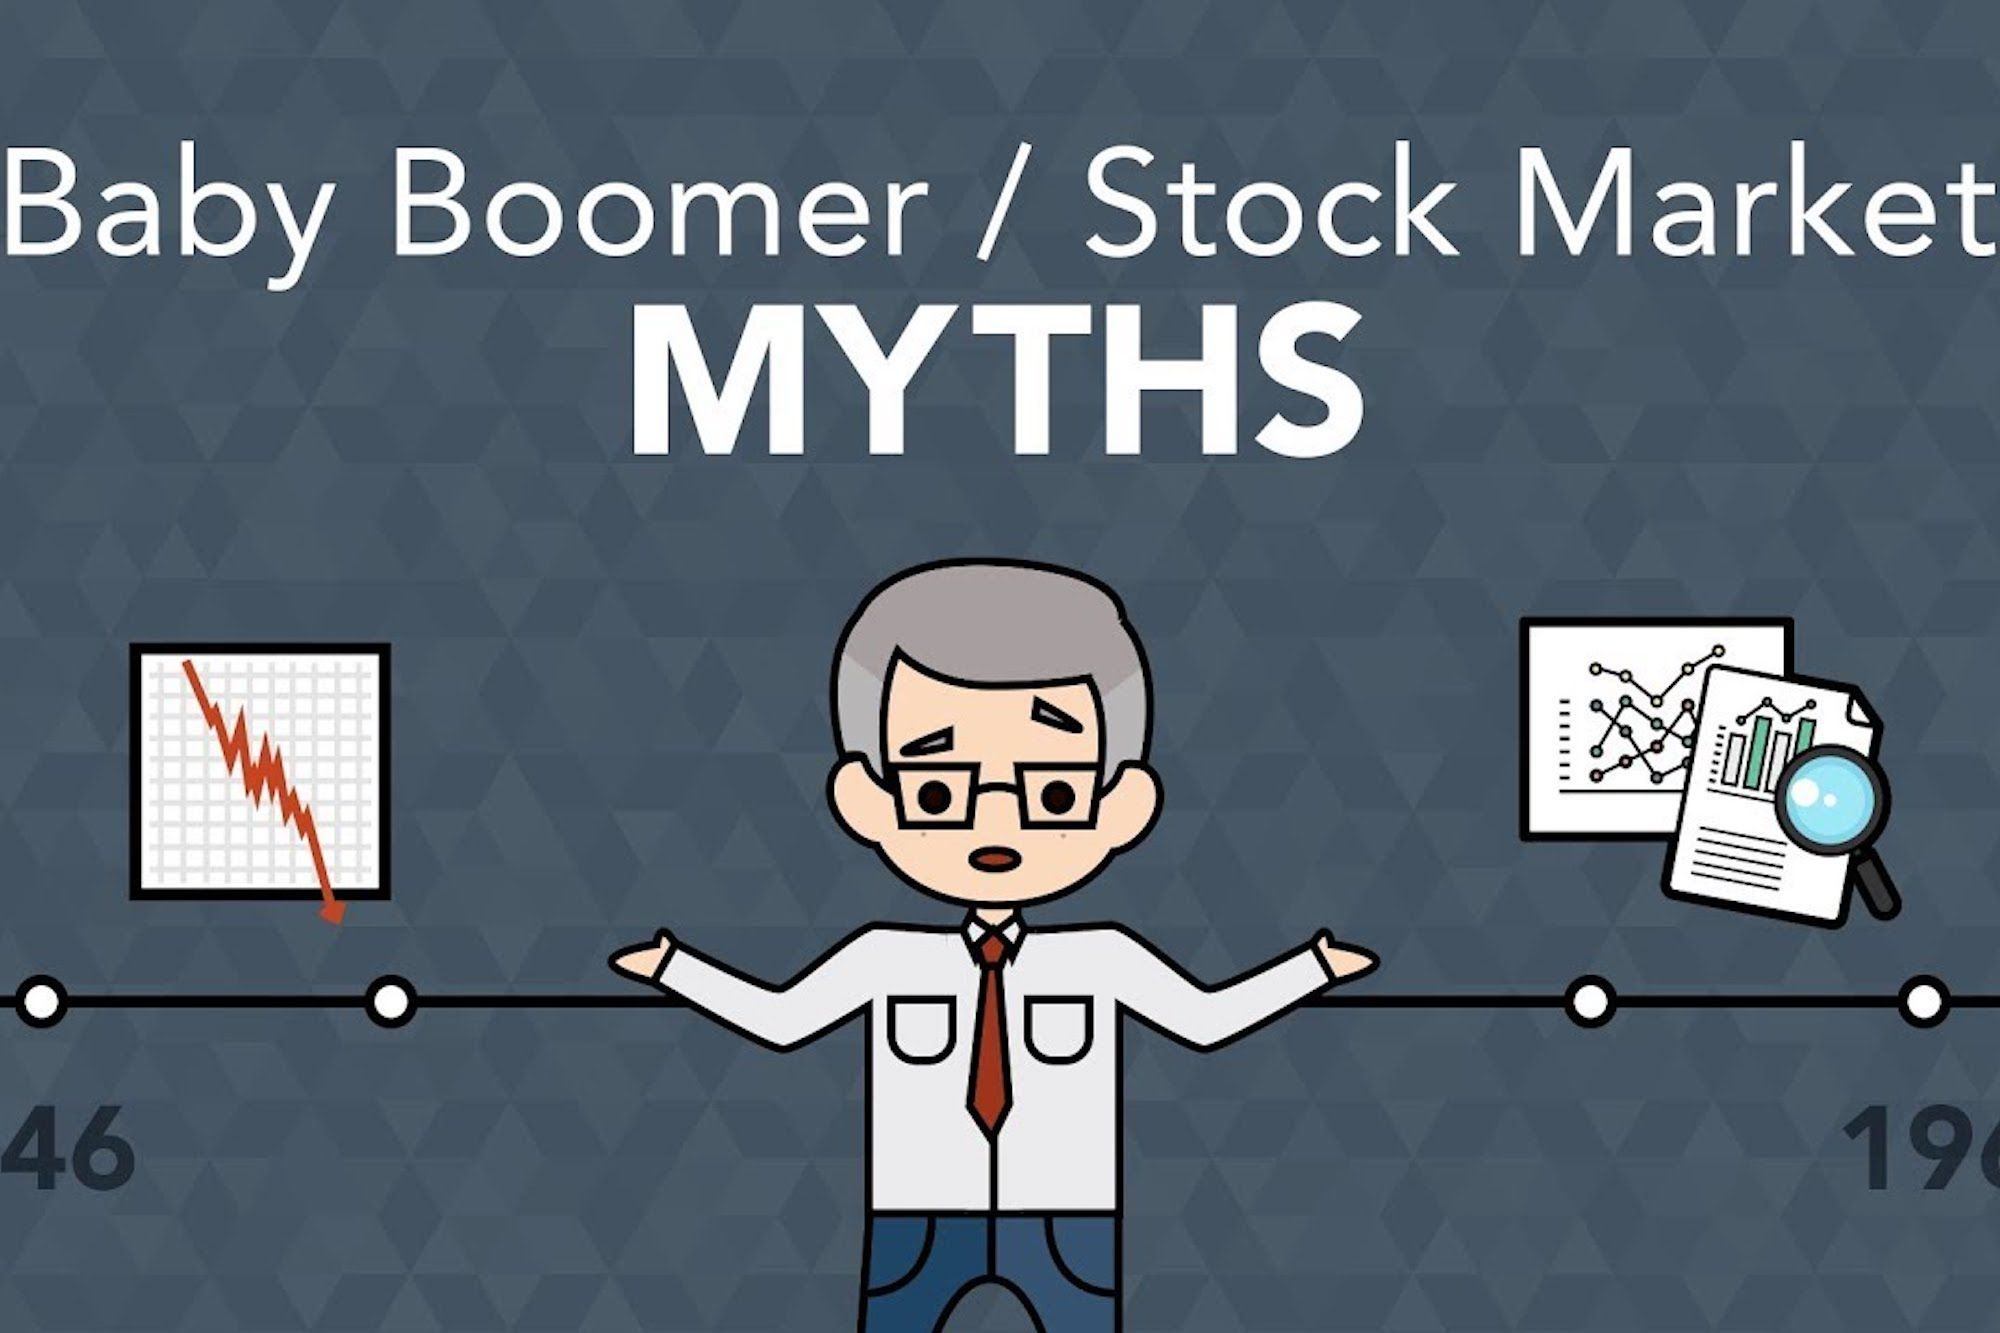 The Myths About Baby Boomers and Retirement Savings